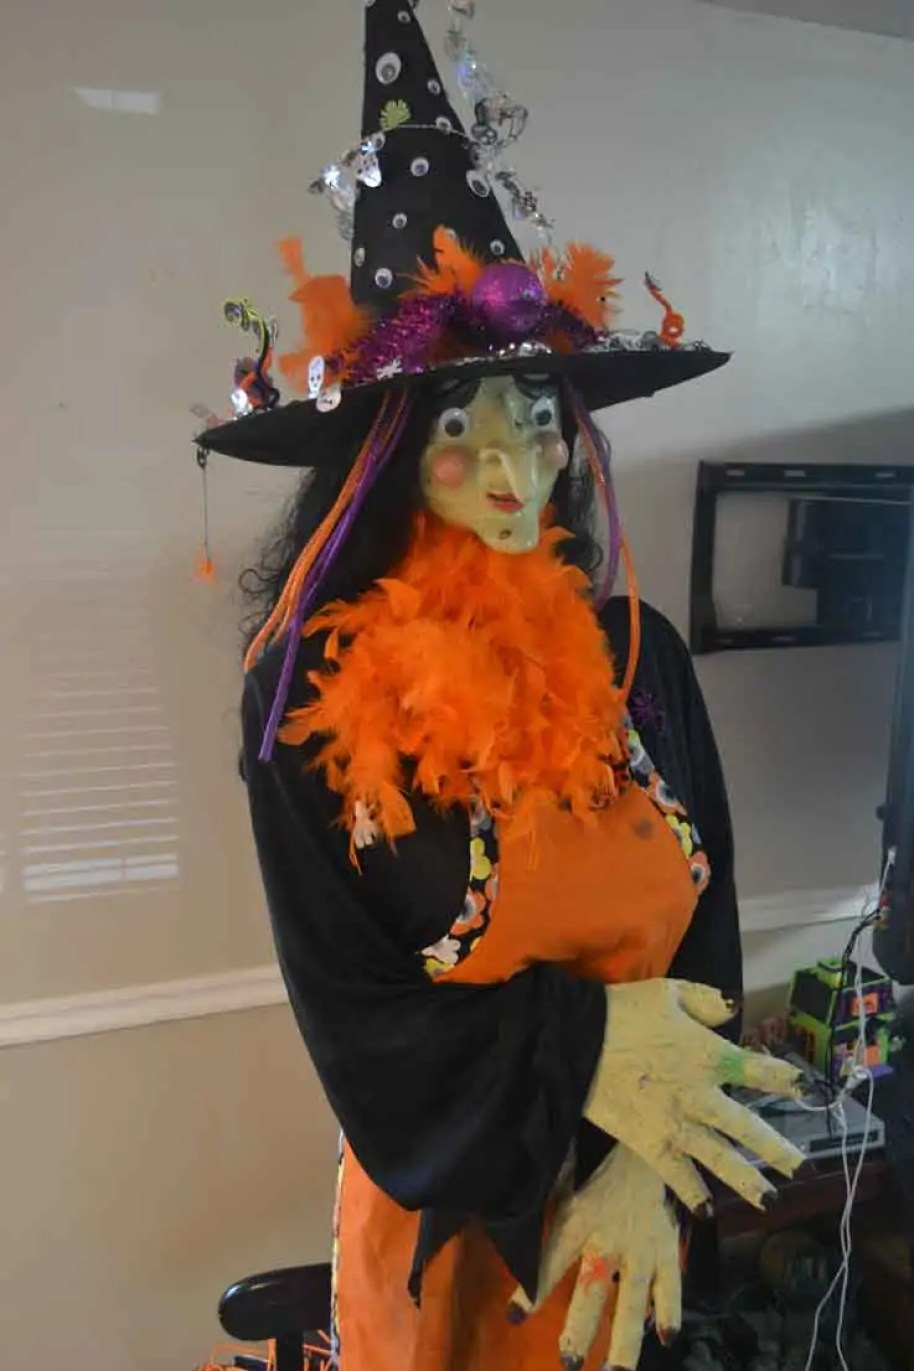 How To Make A Life Size Witch For Halloween | How To Make A Scary Life Size Halloween Witch Uplifting Mayhem